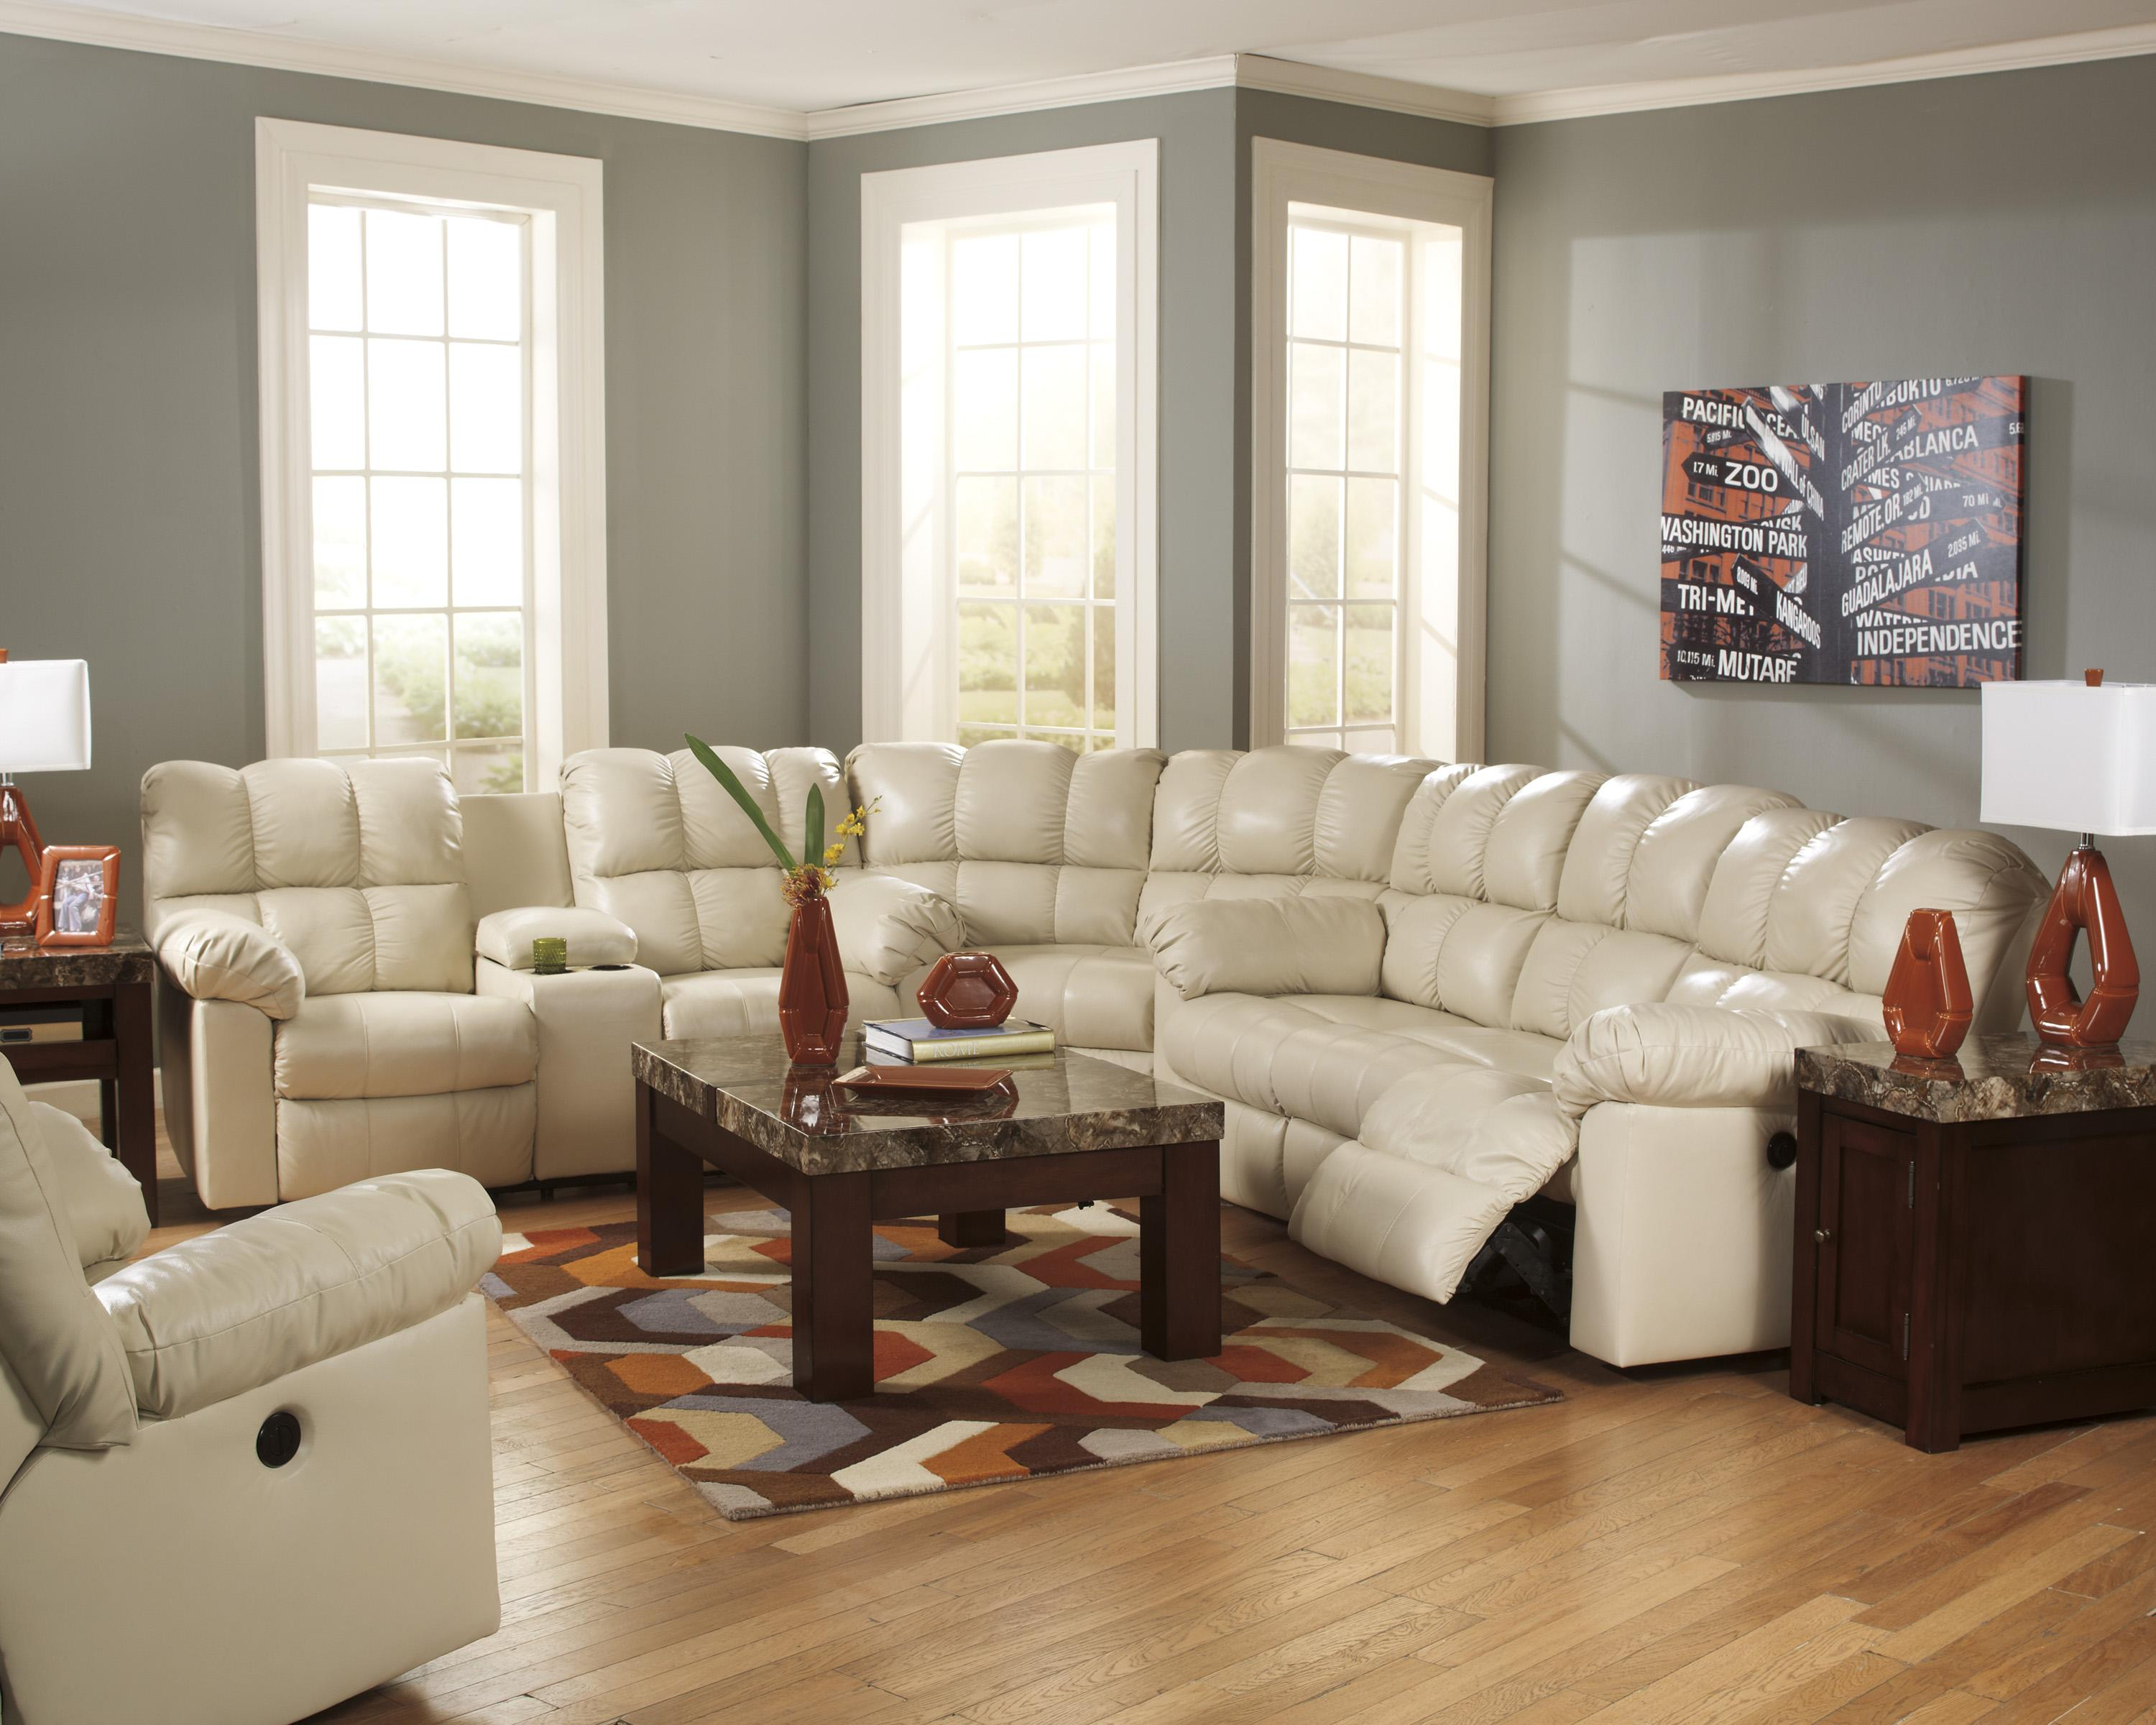 Signature Design by Ashley Kennard - Cream Reclining Living Room Group - Item Number: 29002 Living Room Group 2